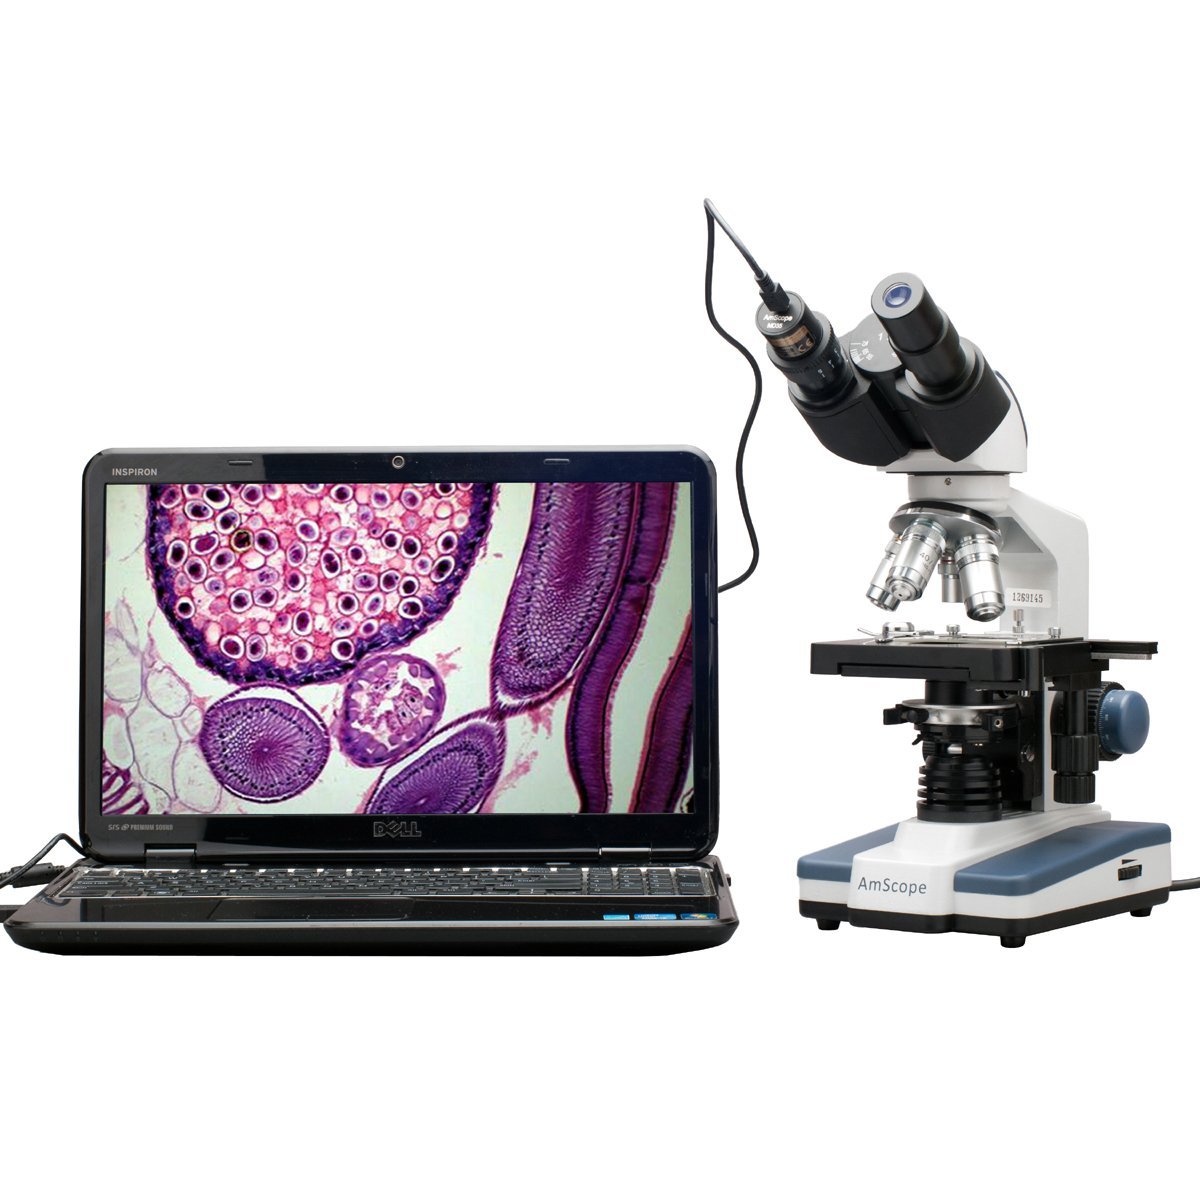 AmScope 40X-2500X LED Digital Binocular Compound Microscope with 3D Stage and 5MP USB Camera by AmScope